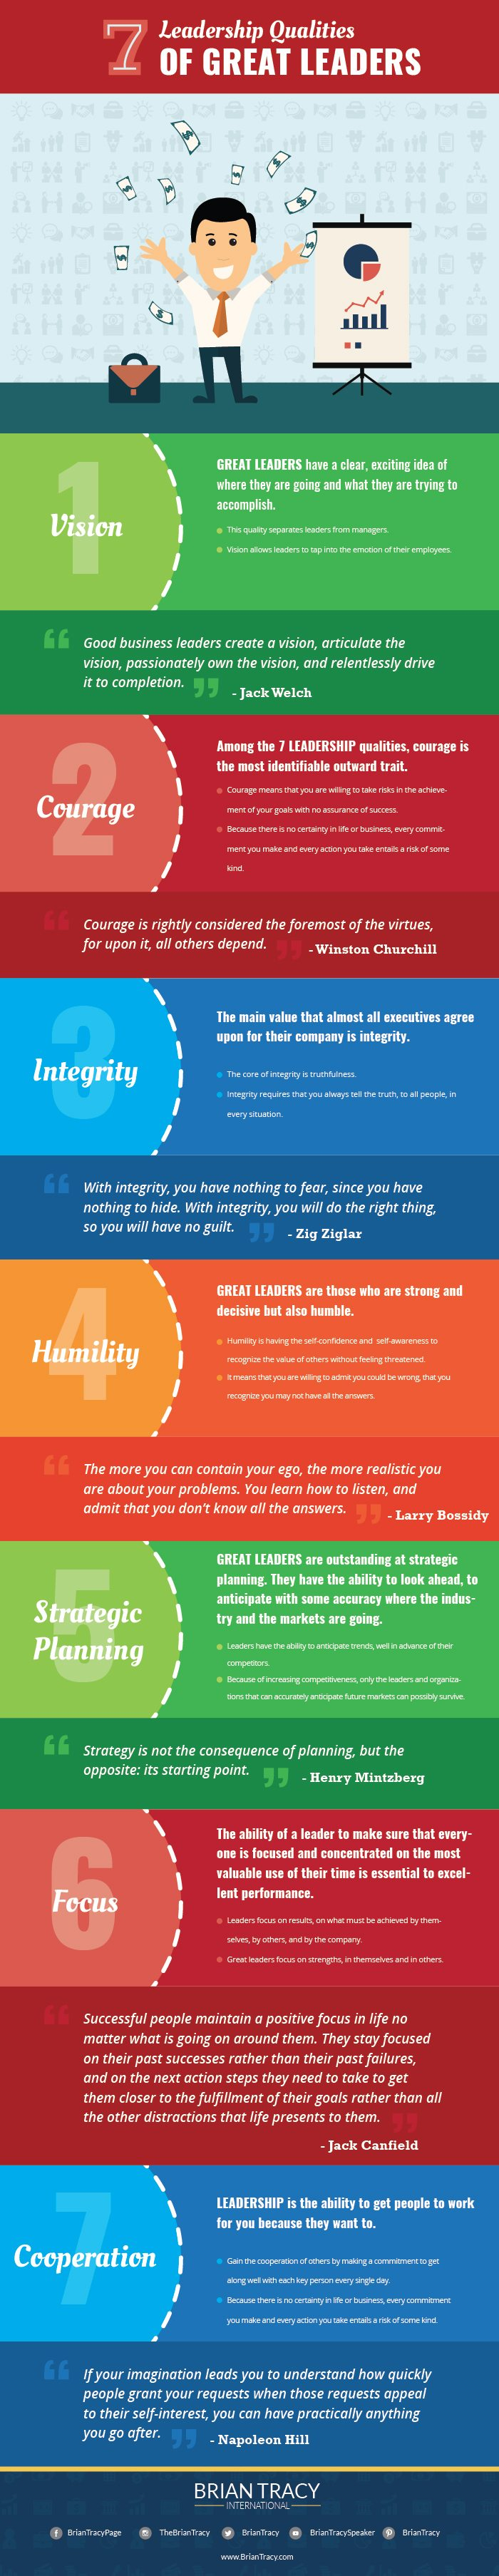 the best leadership qualities infographic brian tracy leadership qualities infographic brian tracy